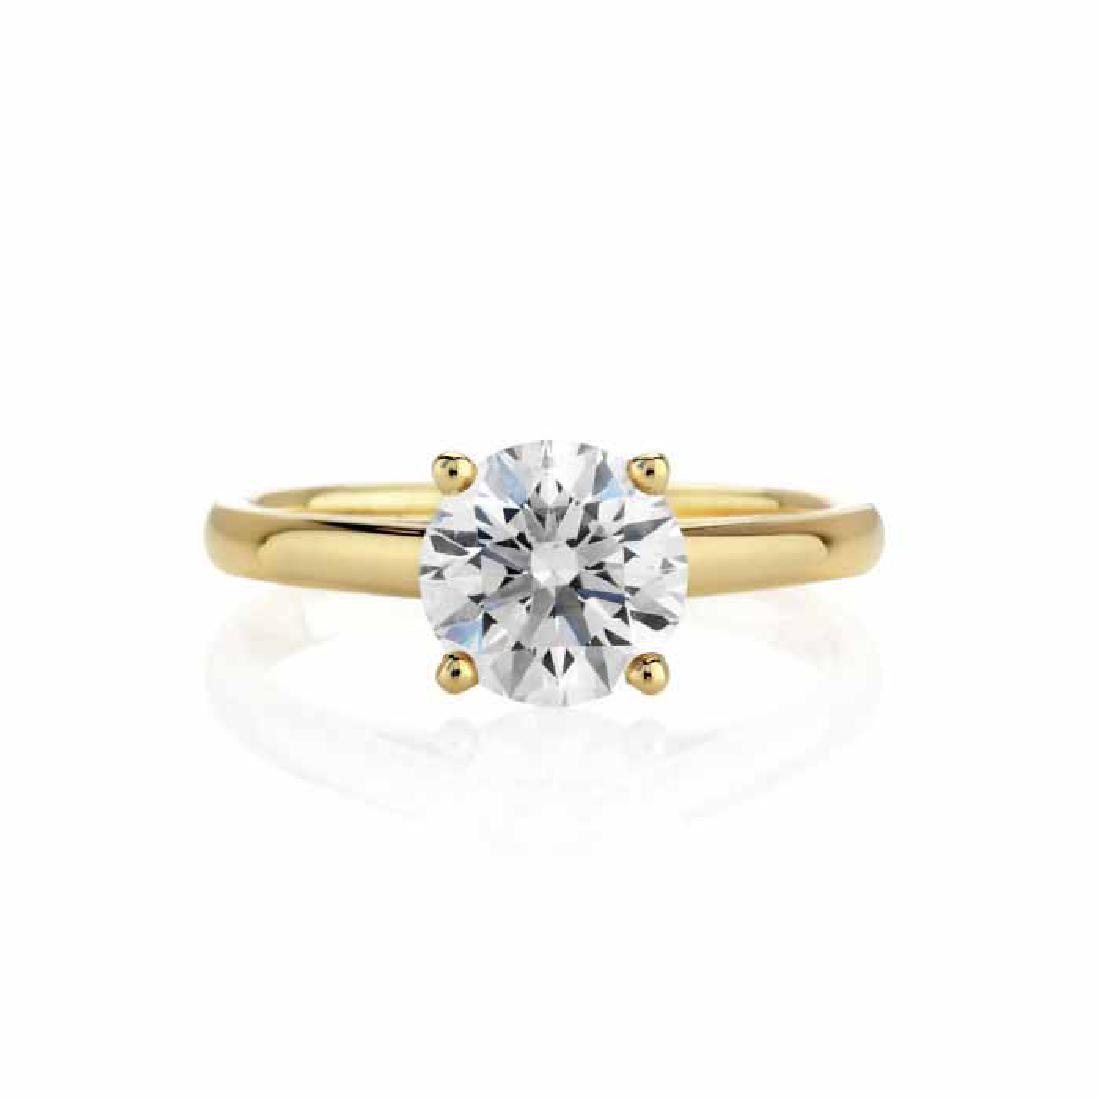 CERTIFIED 1.02 CTW E/SI2 ROUND DIAMOND SOLITAIRE RING I